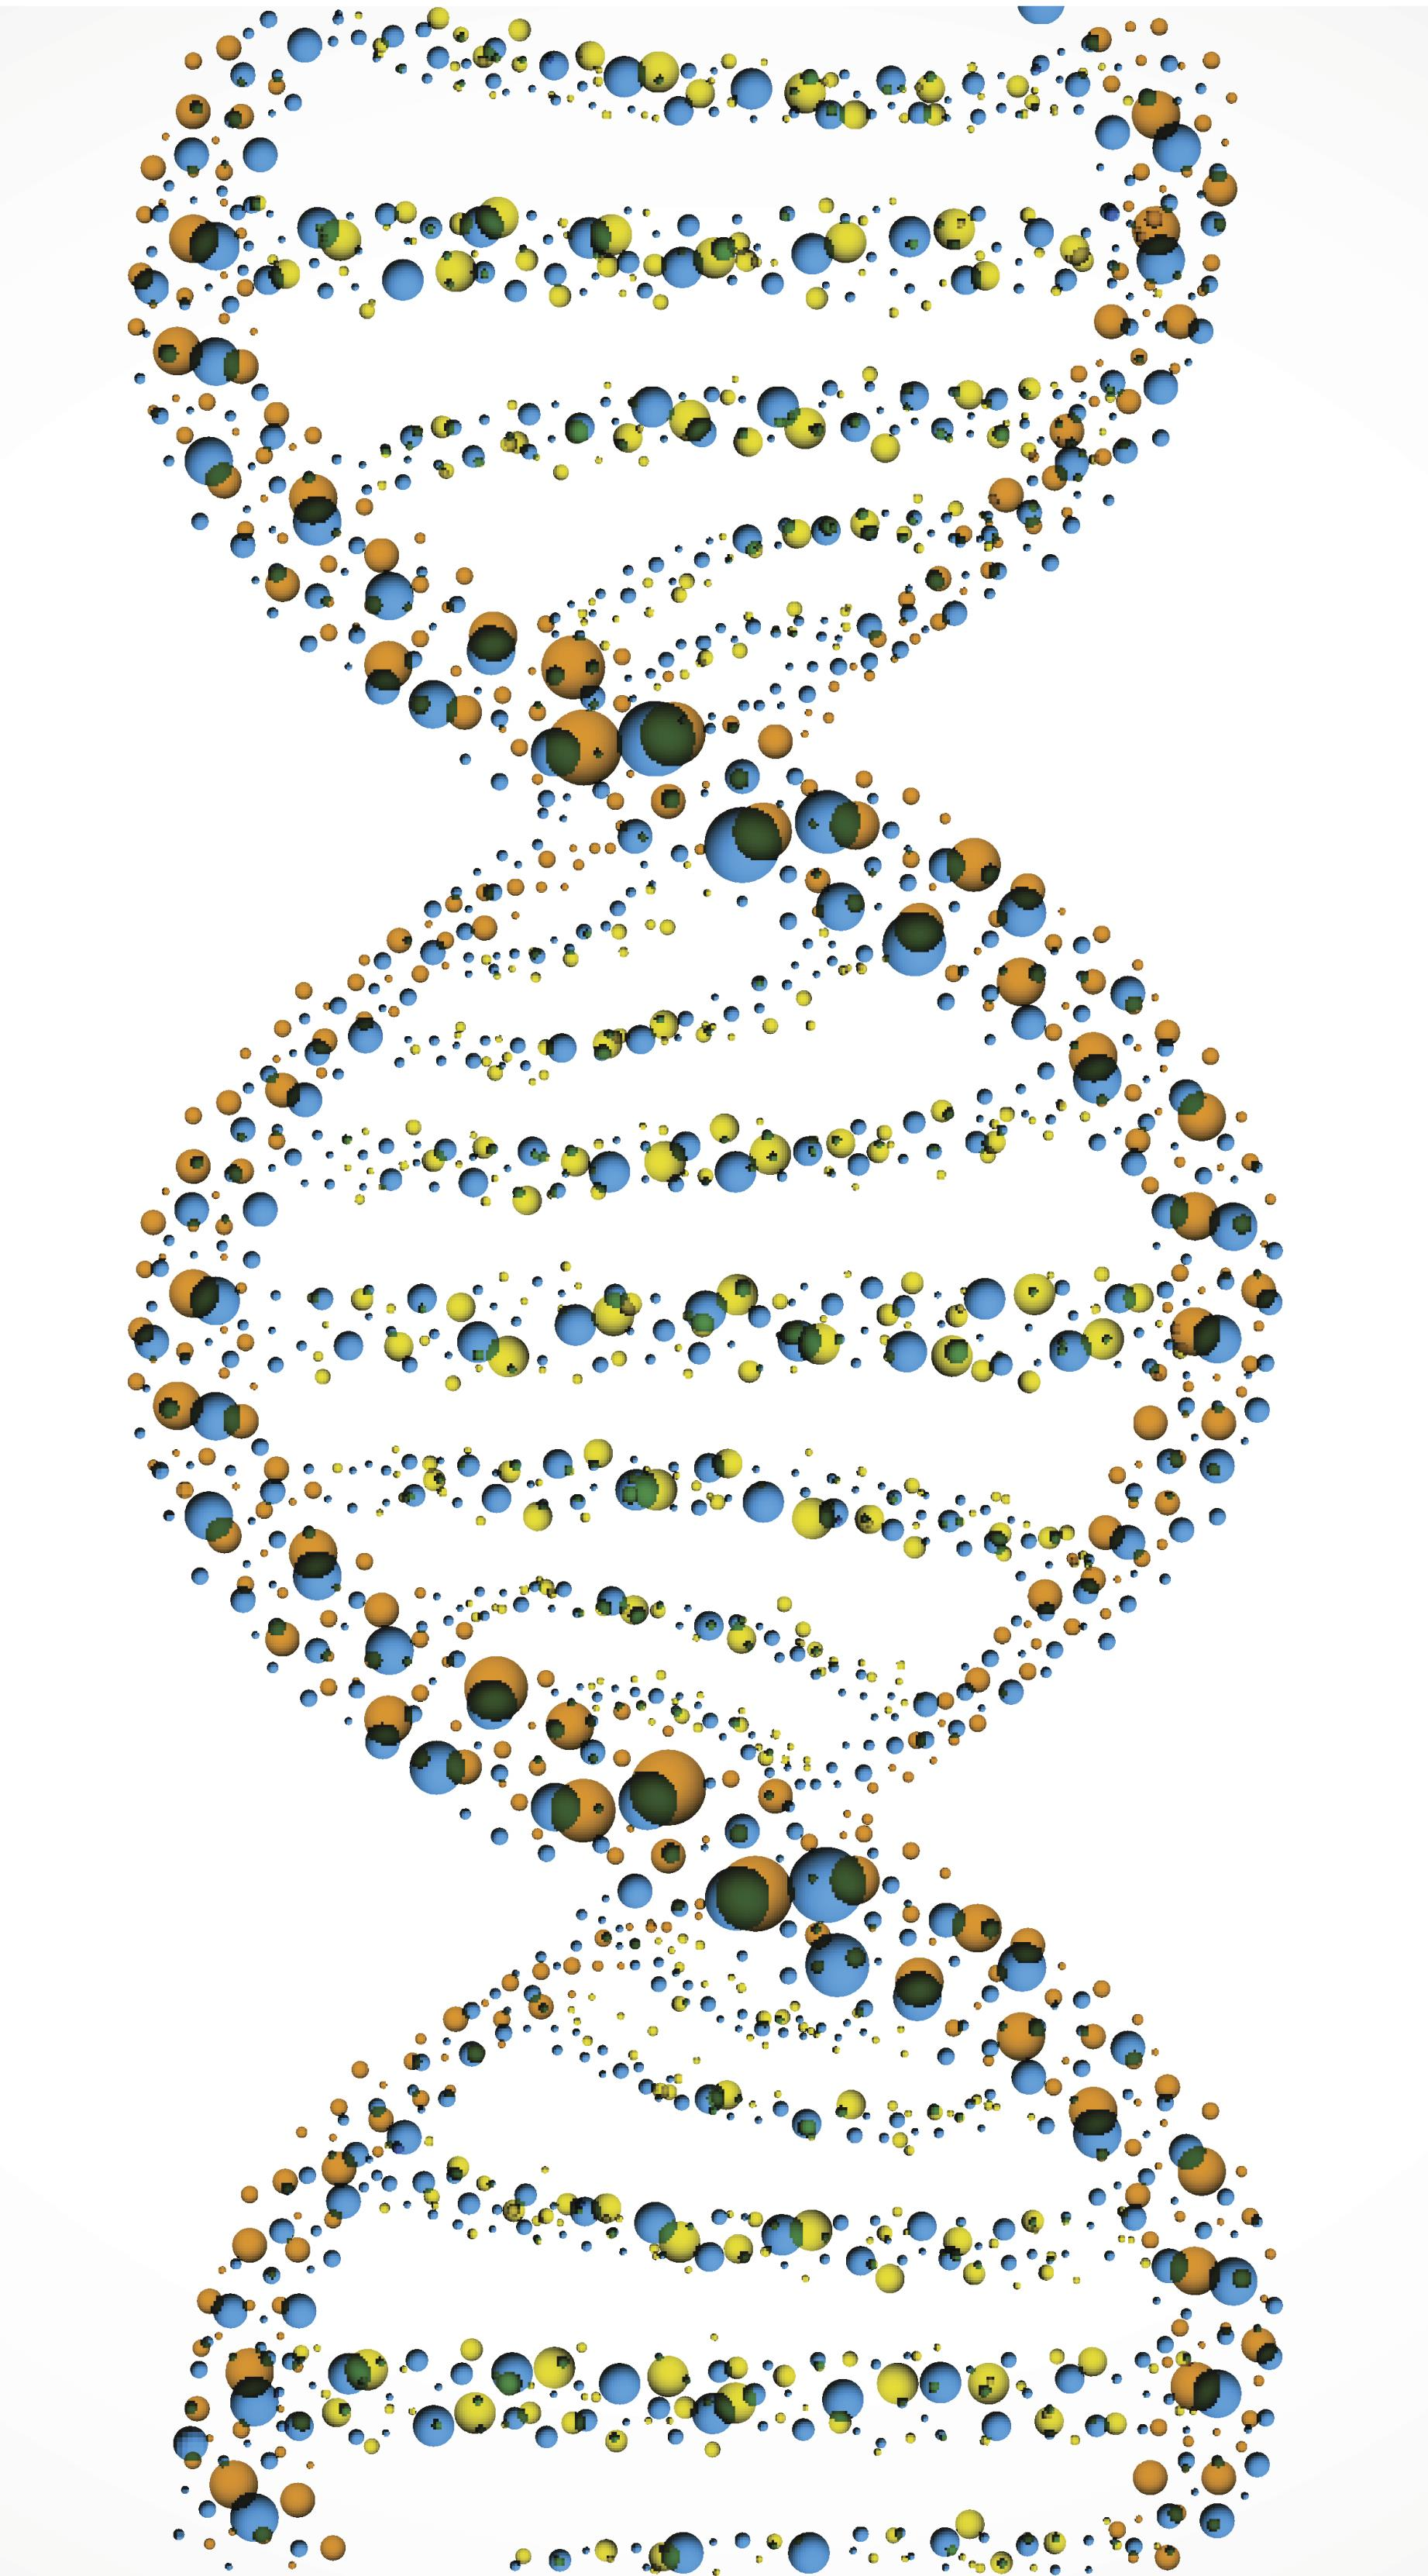 Gene replacement therapy can be used as treatment option for fatal condition